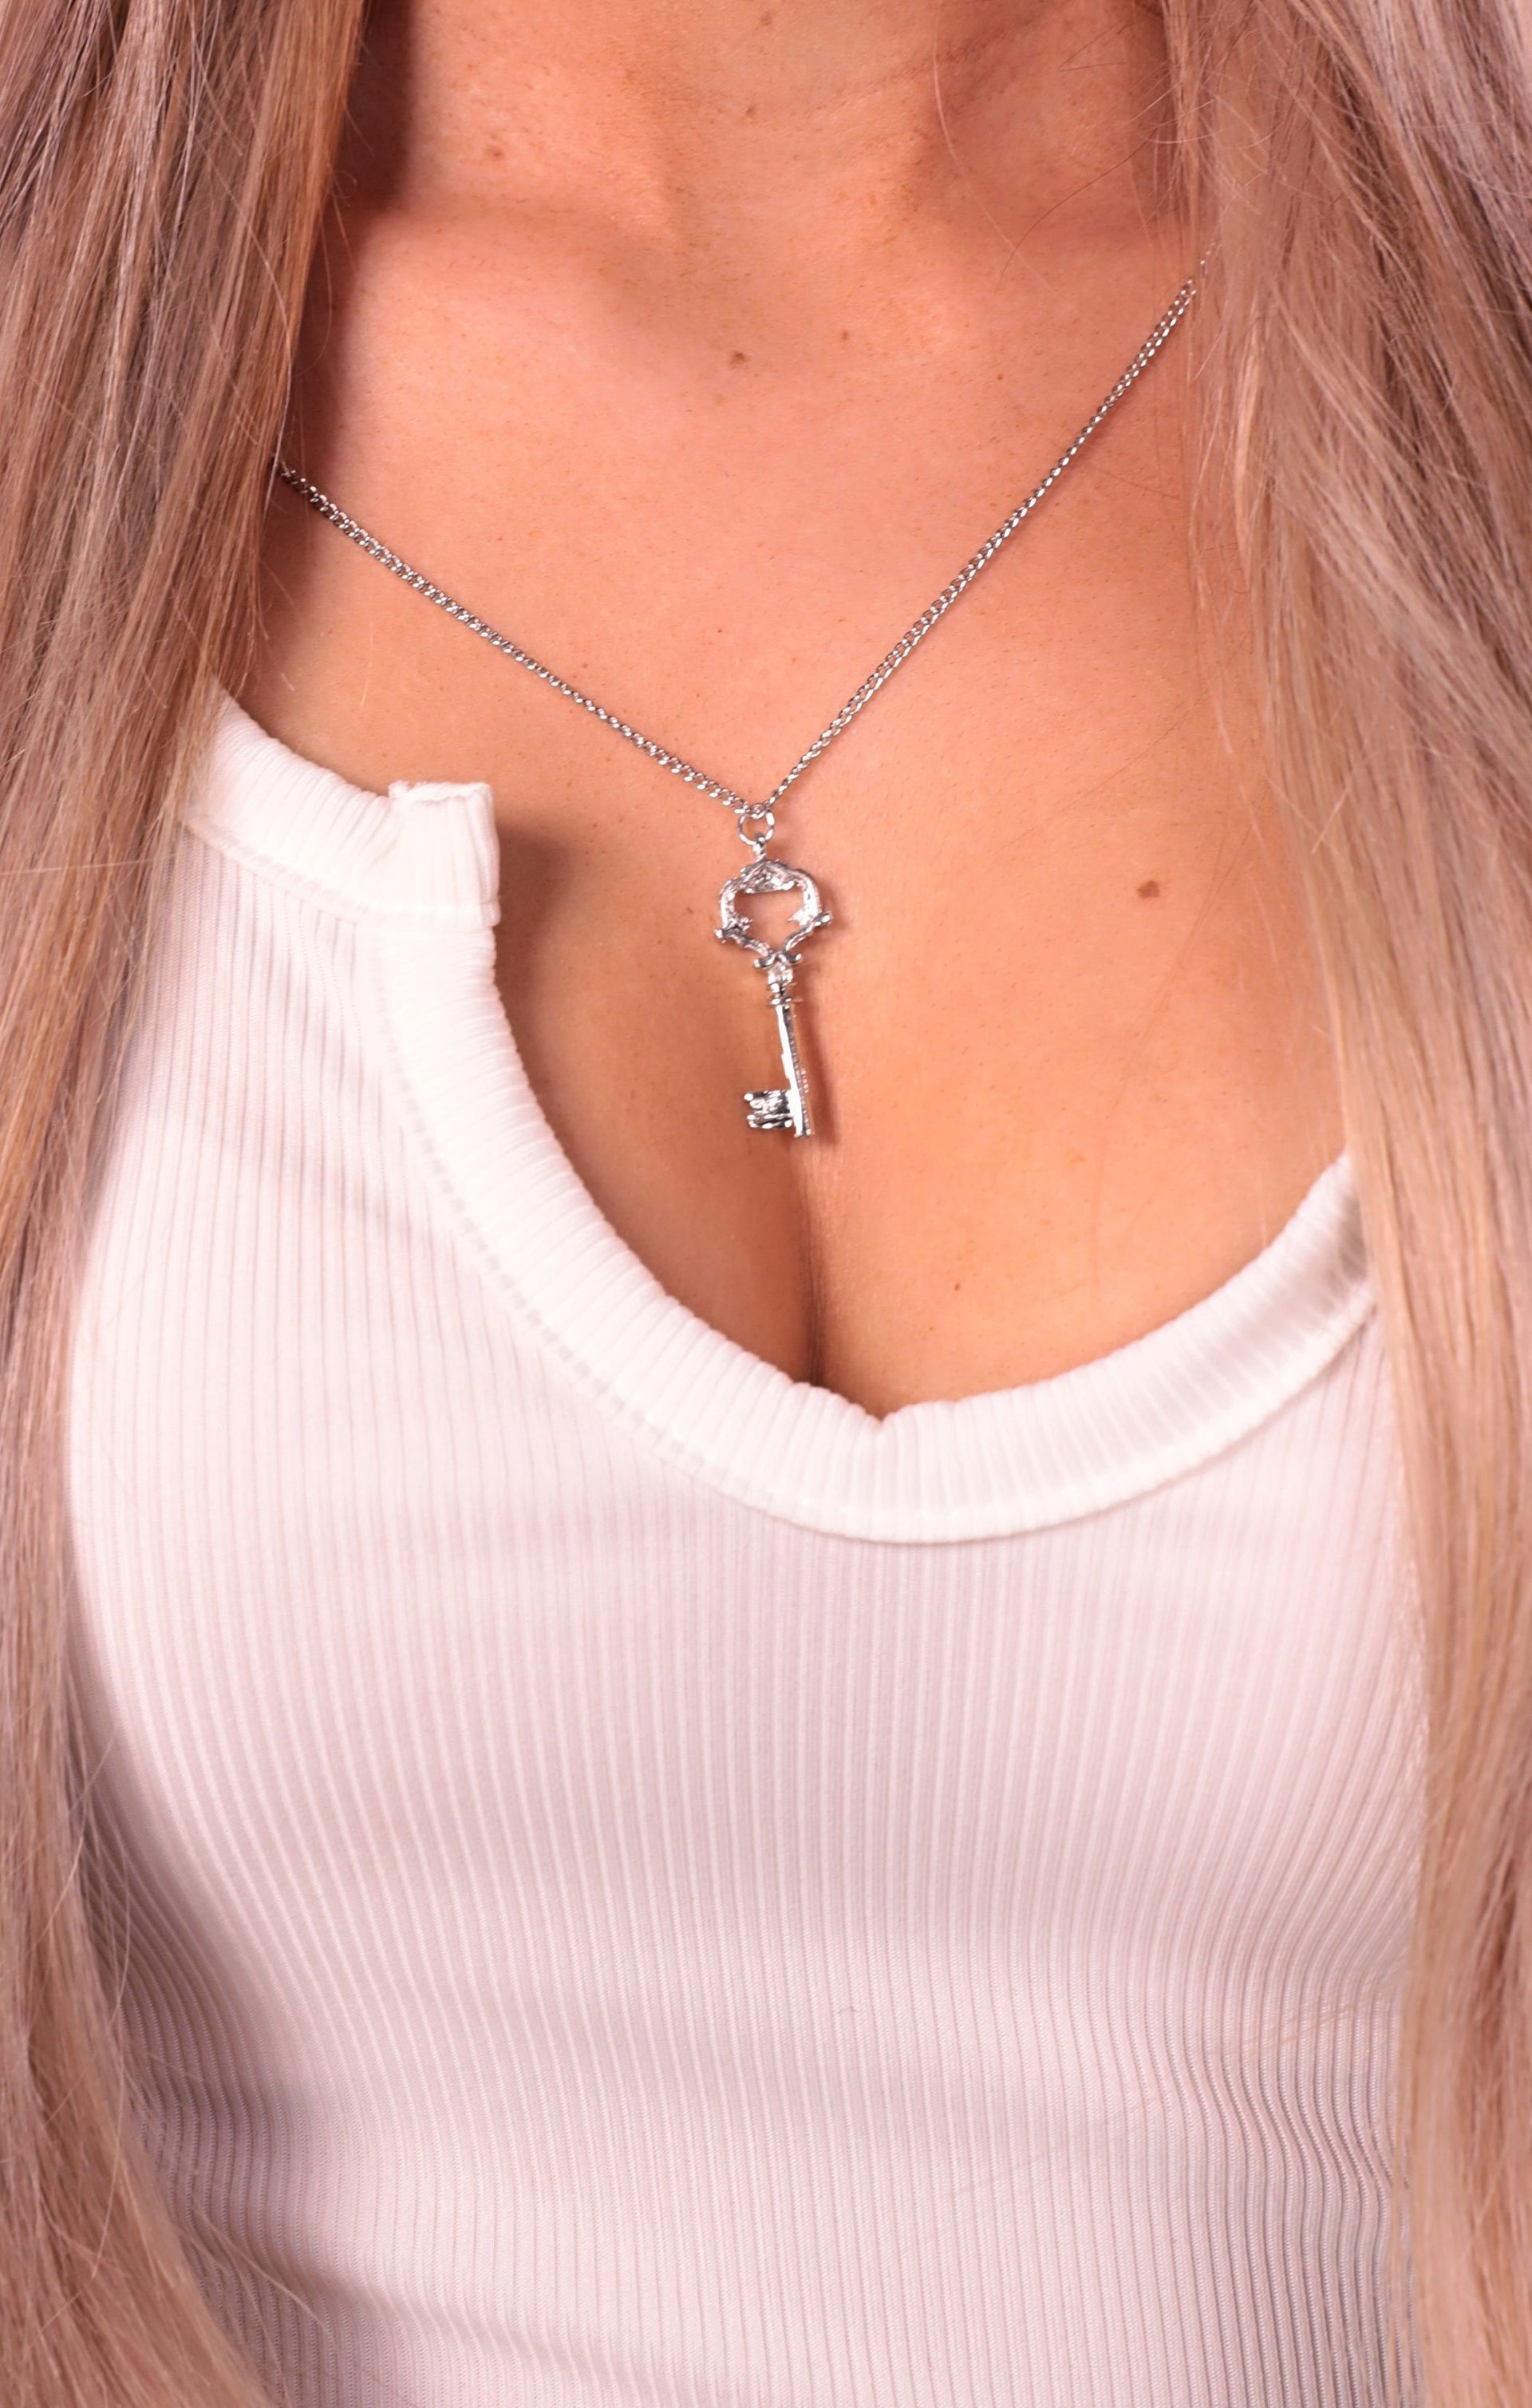 Silver Filigree Key Necklace - Sabrina